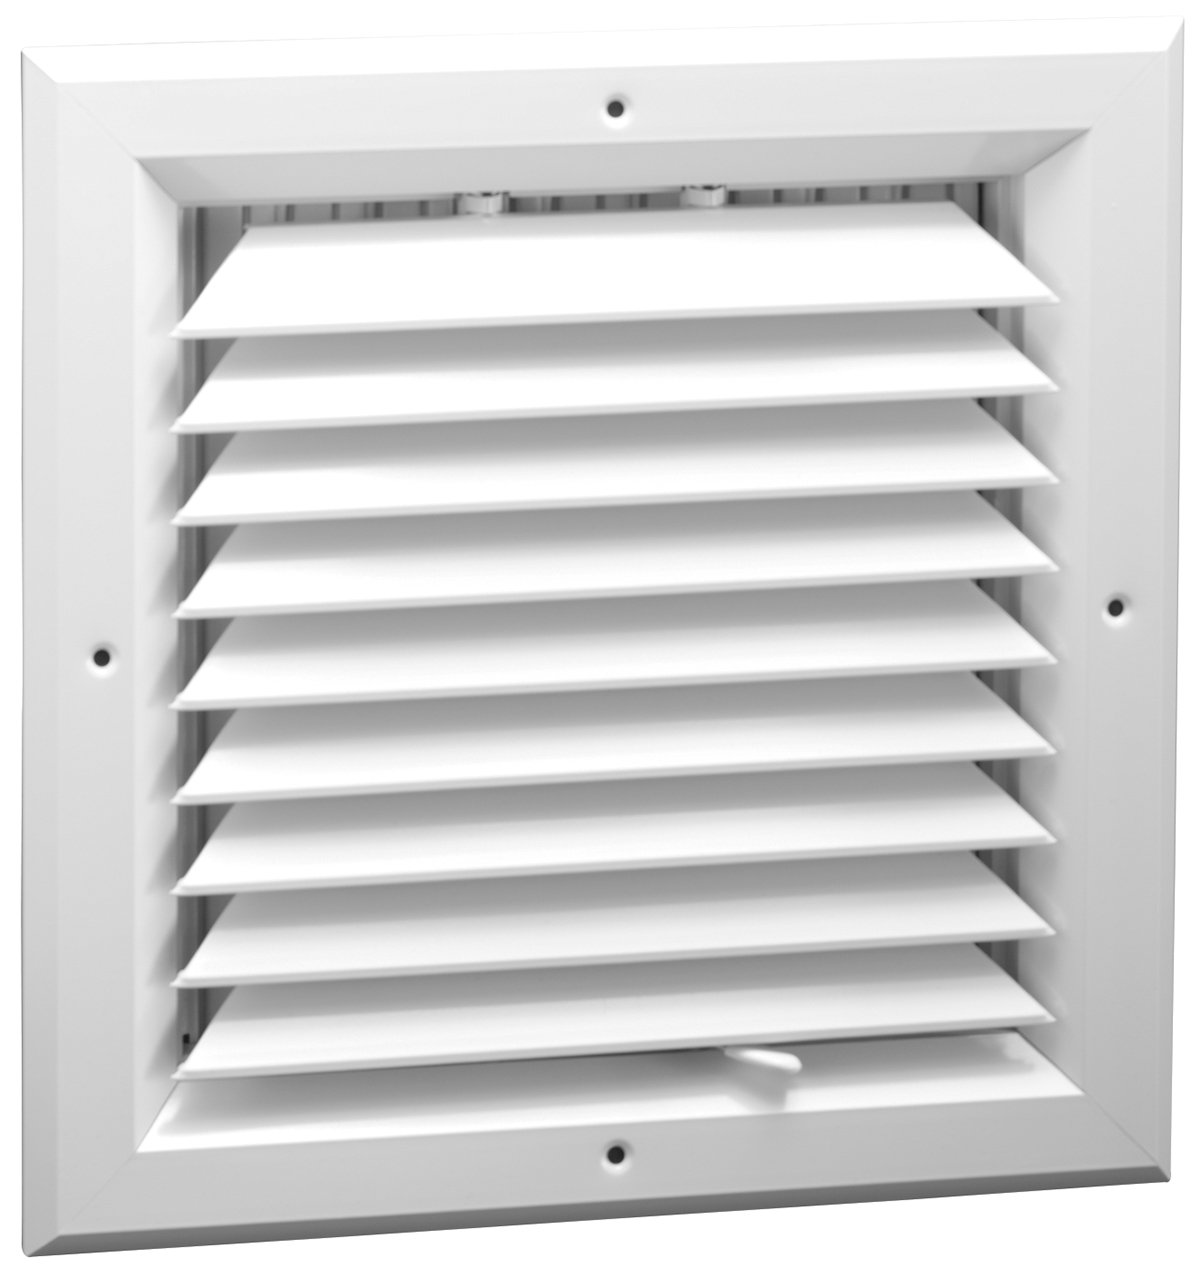 8'' x 8'' - 1-Way Extruded Aluminum Ceiling Diffuser Square - HVAC Vent Cover